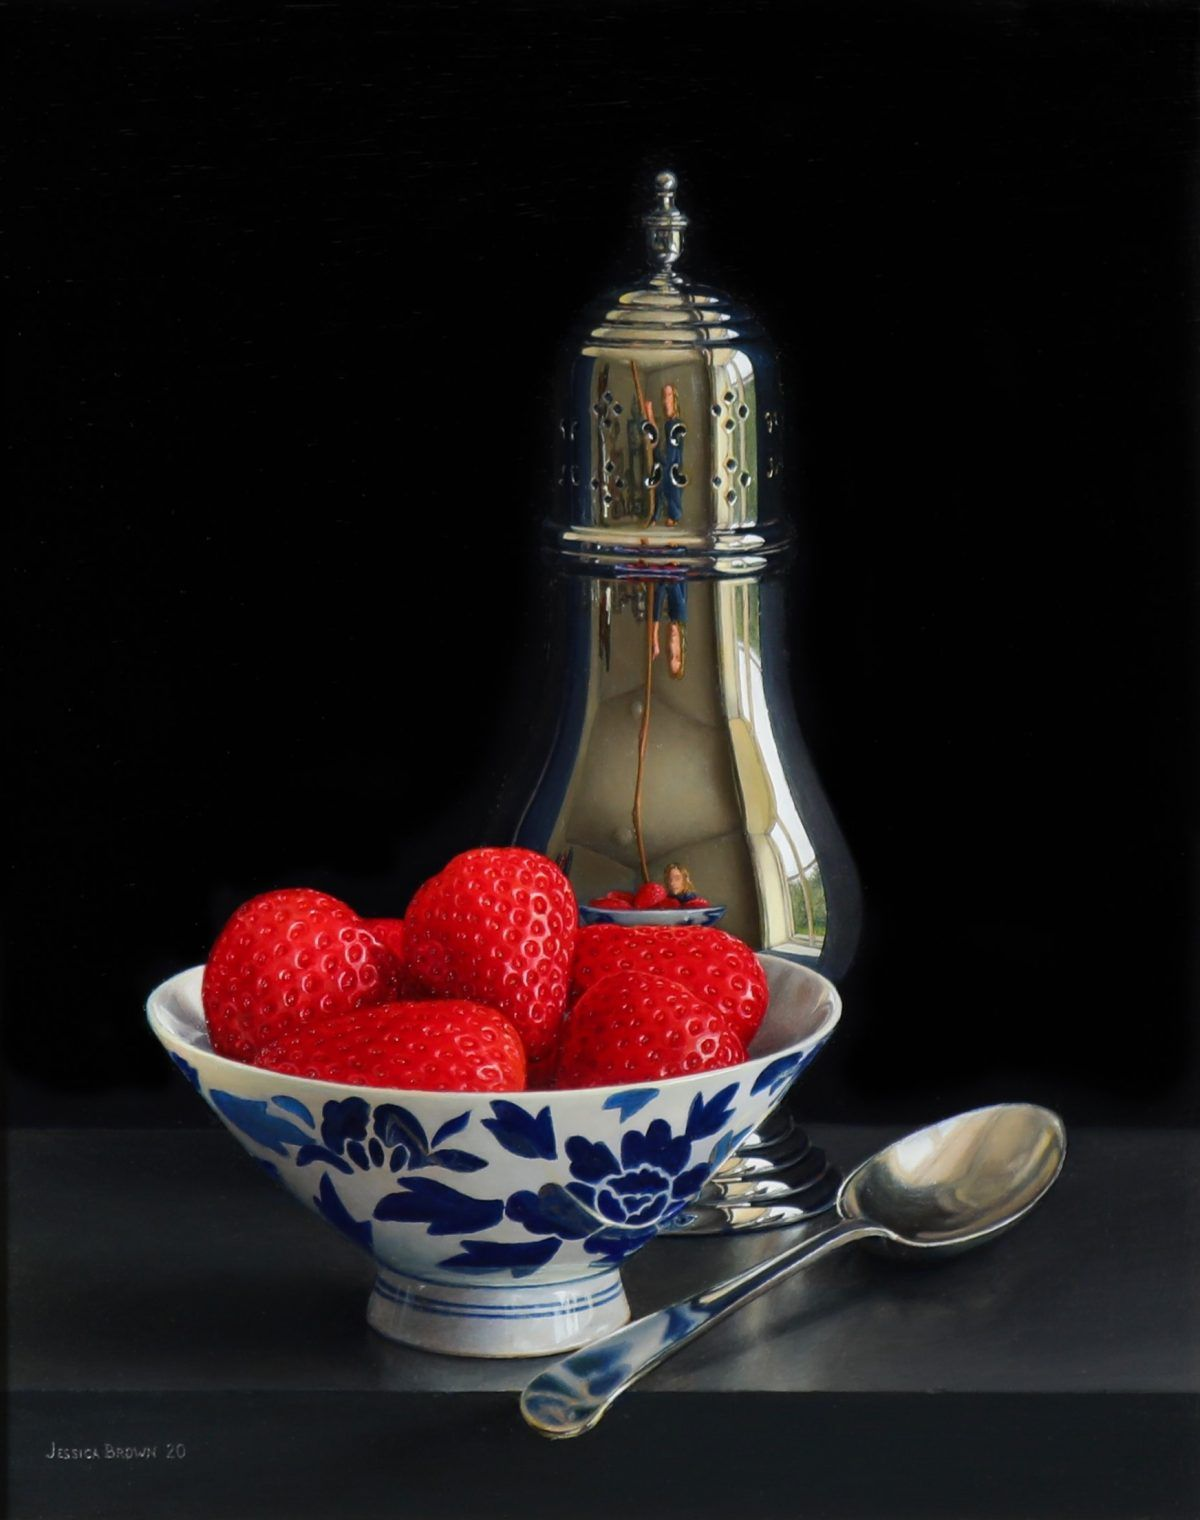 Still Life with Silver Sugar Shaker and Strawberries in a Chinese Porcelain Bowl by Jessica Brown